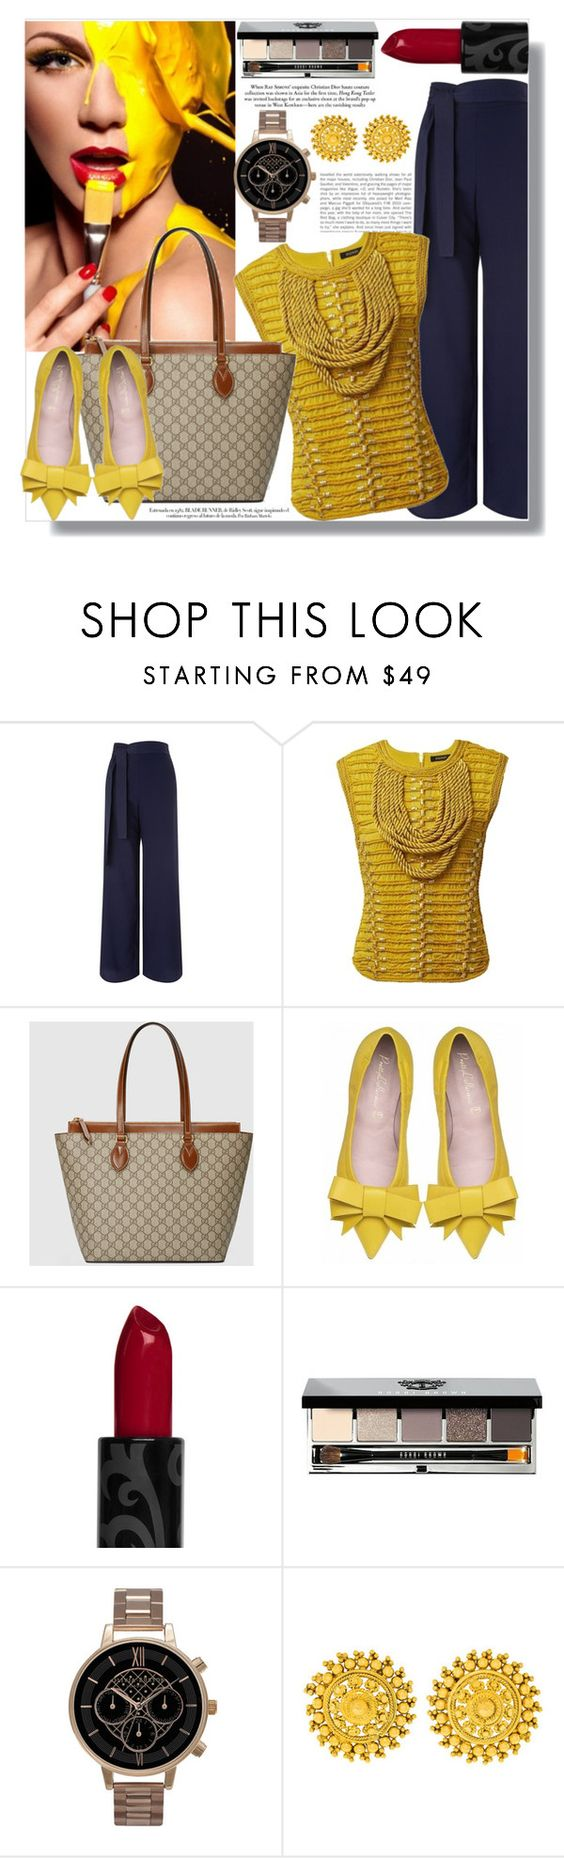 """Fashion is Mute Without Style, your character & enthusiam gives it a voice"" by xwafflecakezx ❤ liked on Polyvore featuring Miss Selfridge, Balmain, Gucci, Bobbi Brown Cosmetics and Olivia Burton"